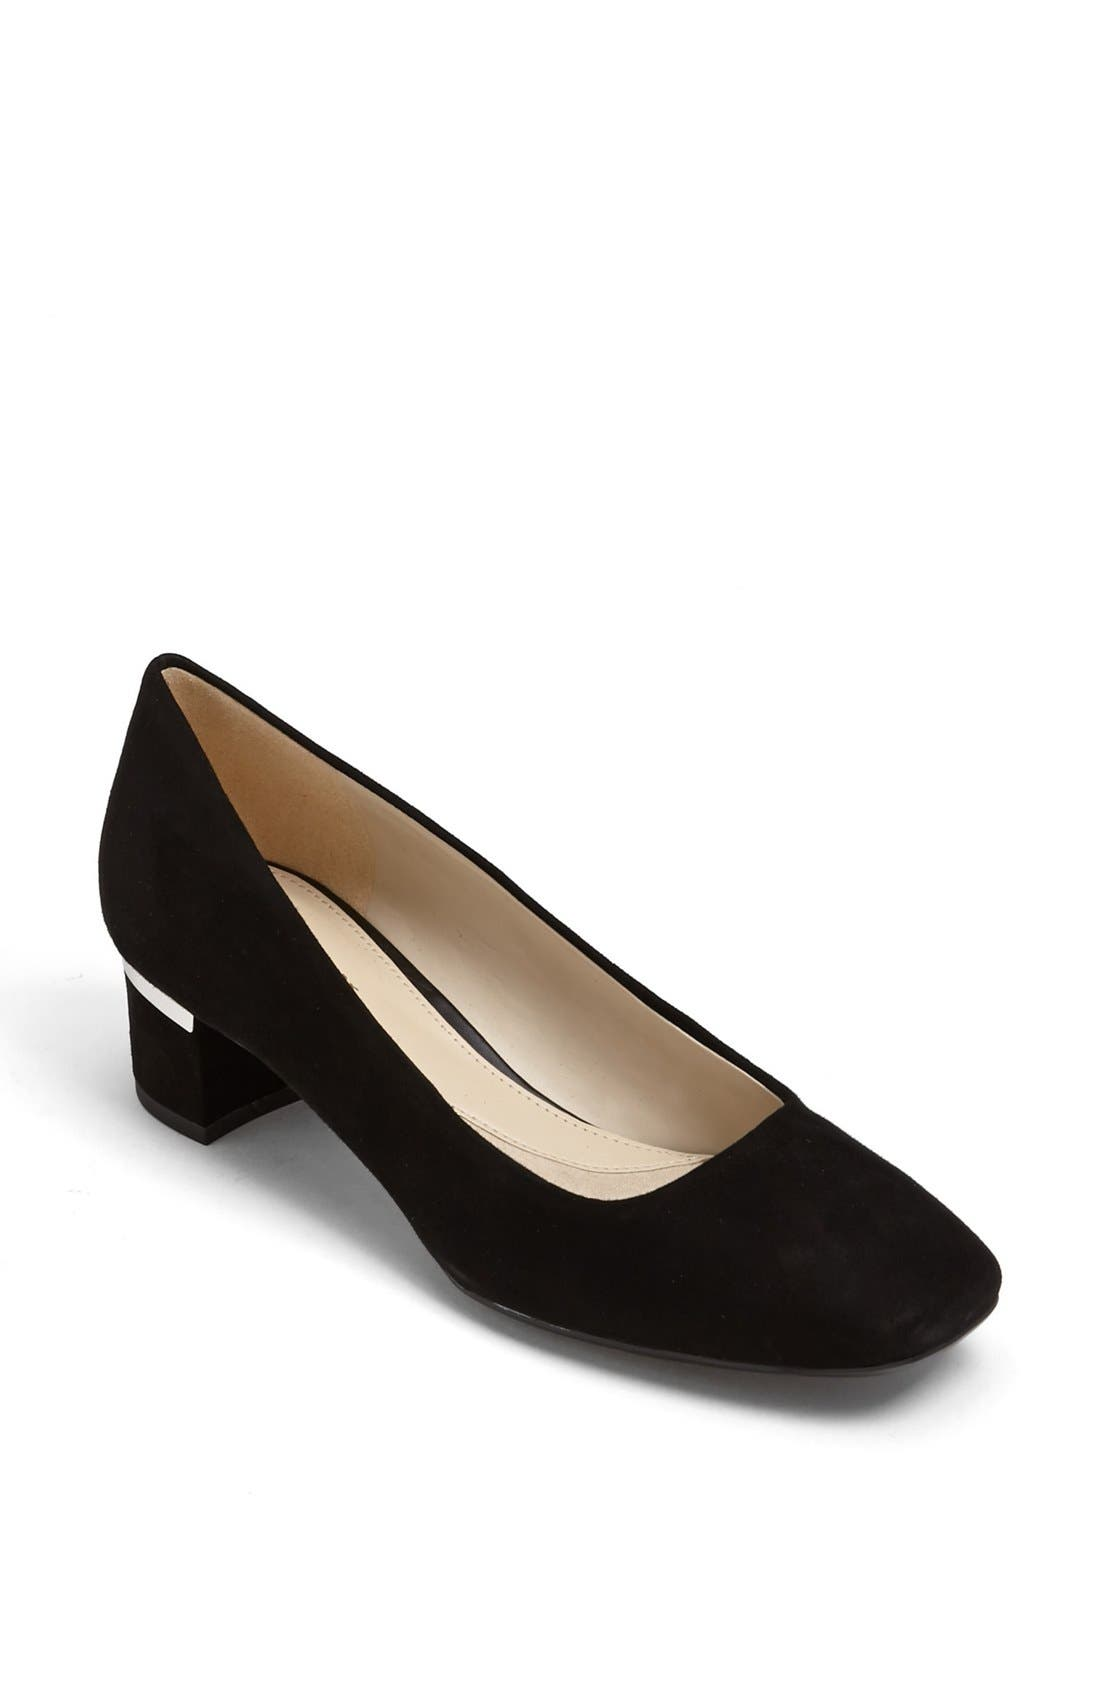 'Wanda' Pump,                         Main,                         color, 001